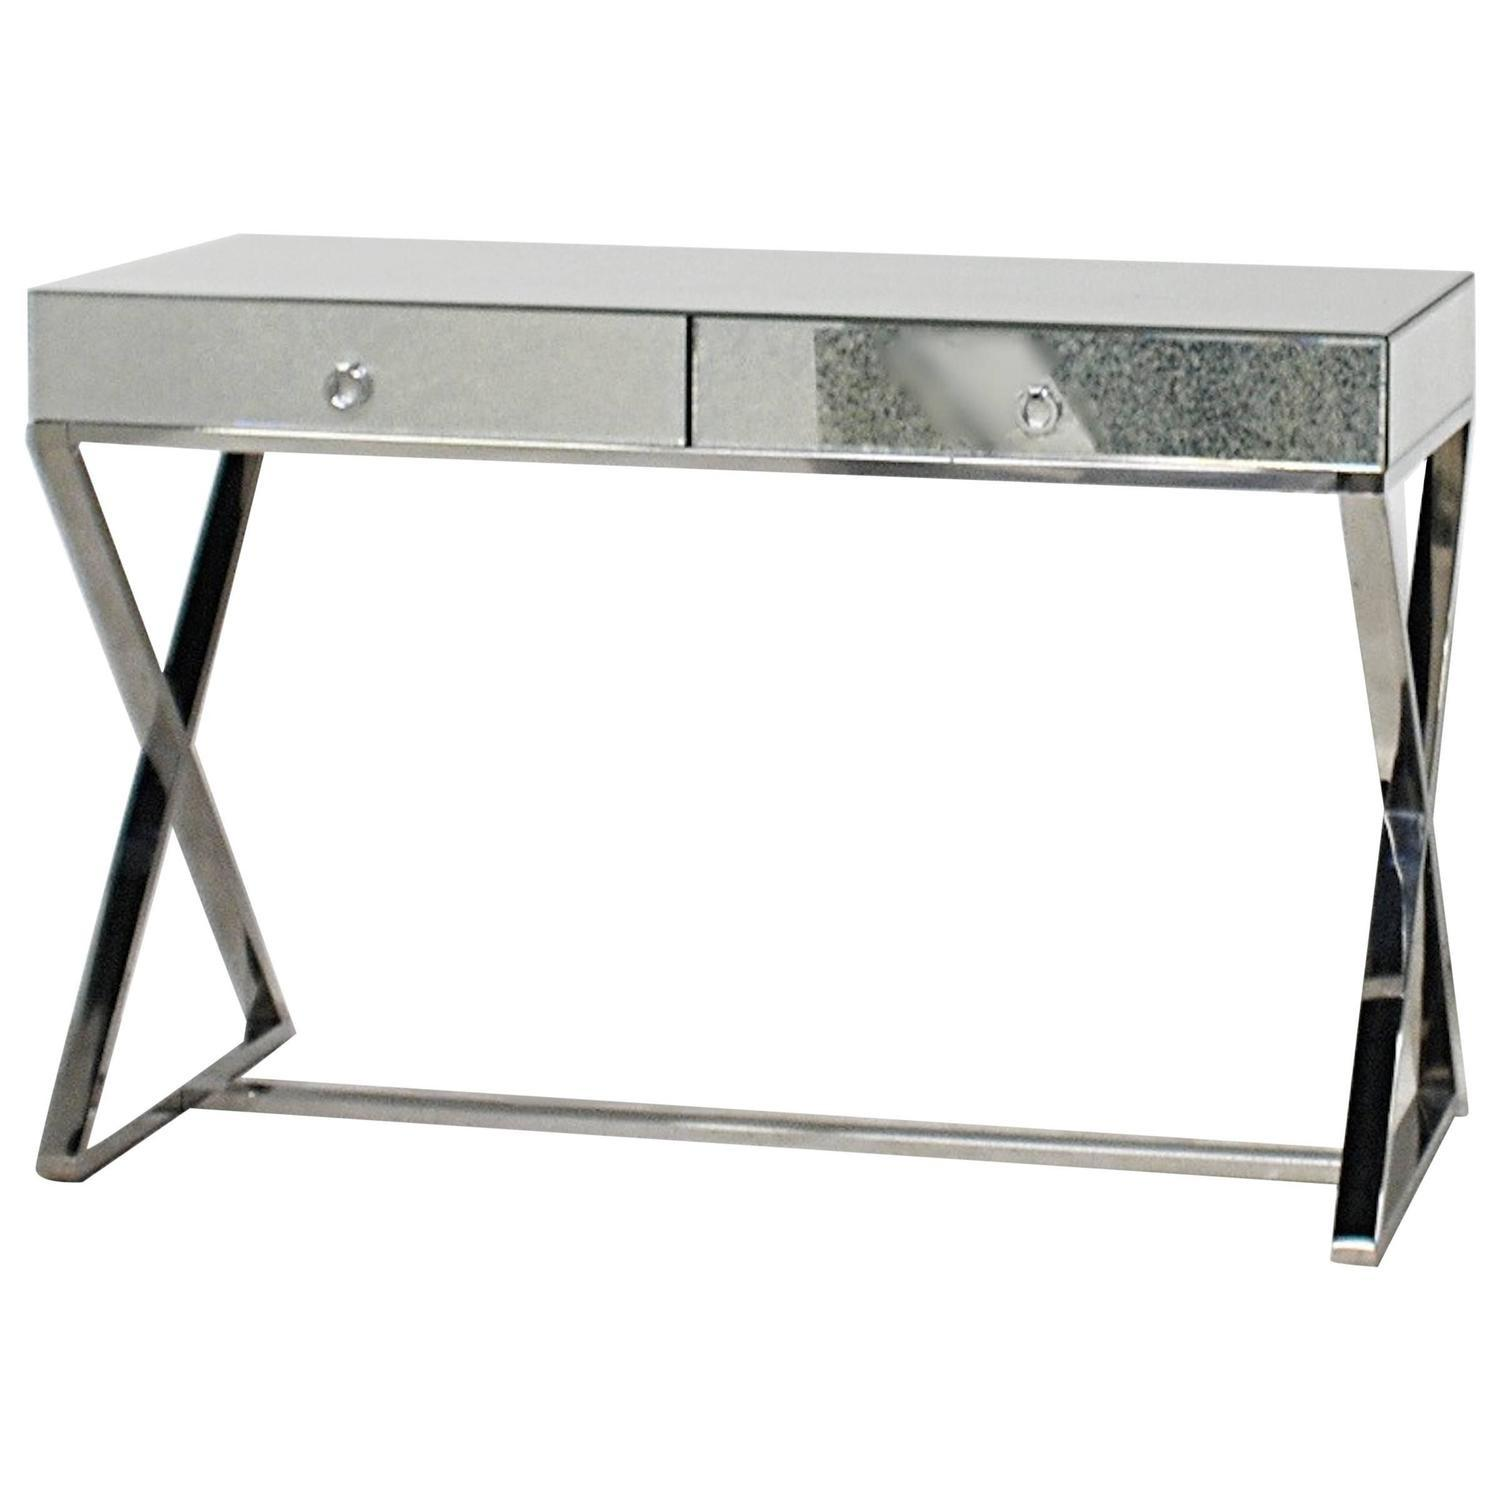 Modern Mirrored Chrome Desk Vanity 1stdibs